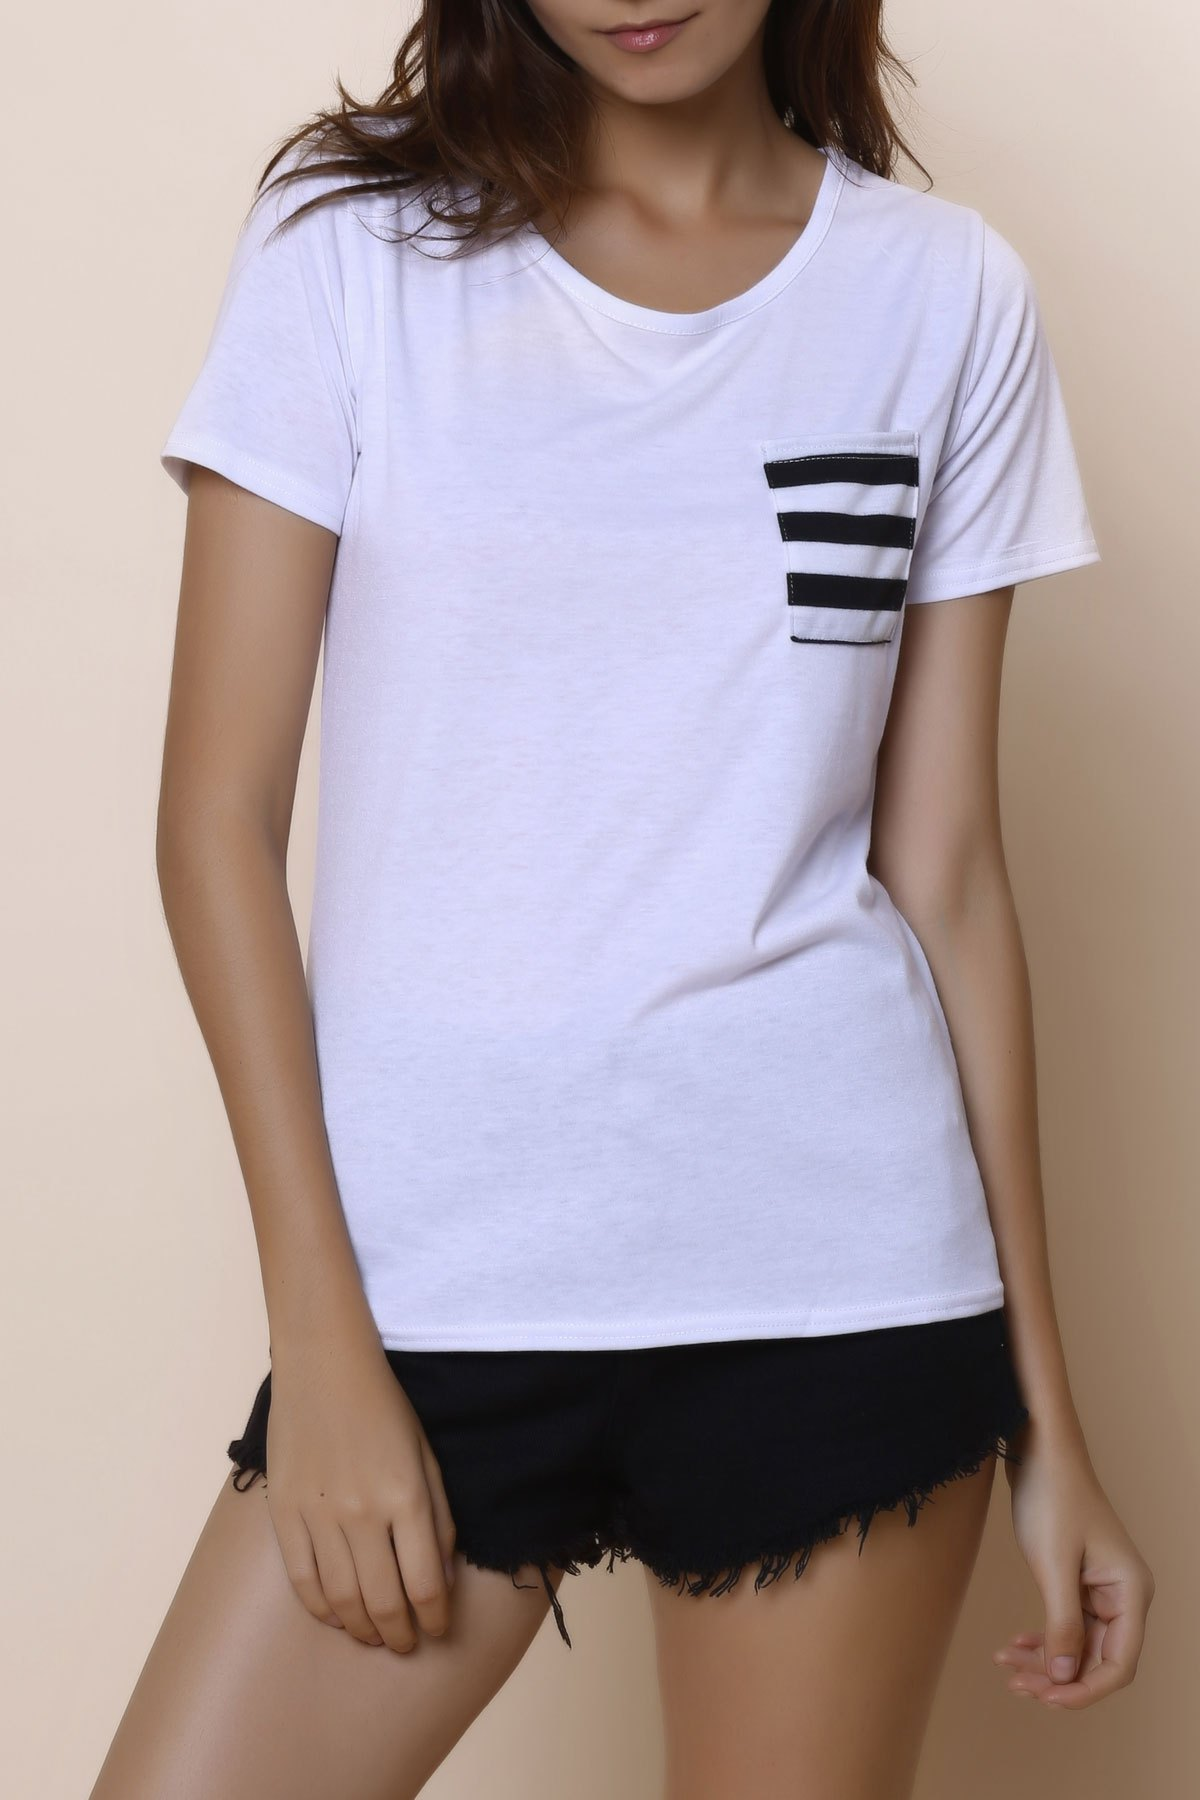 Casual Women's Scoop Neck Striped Short Sleeve Loose-Fitting T-Shirt - WHITE S